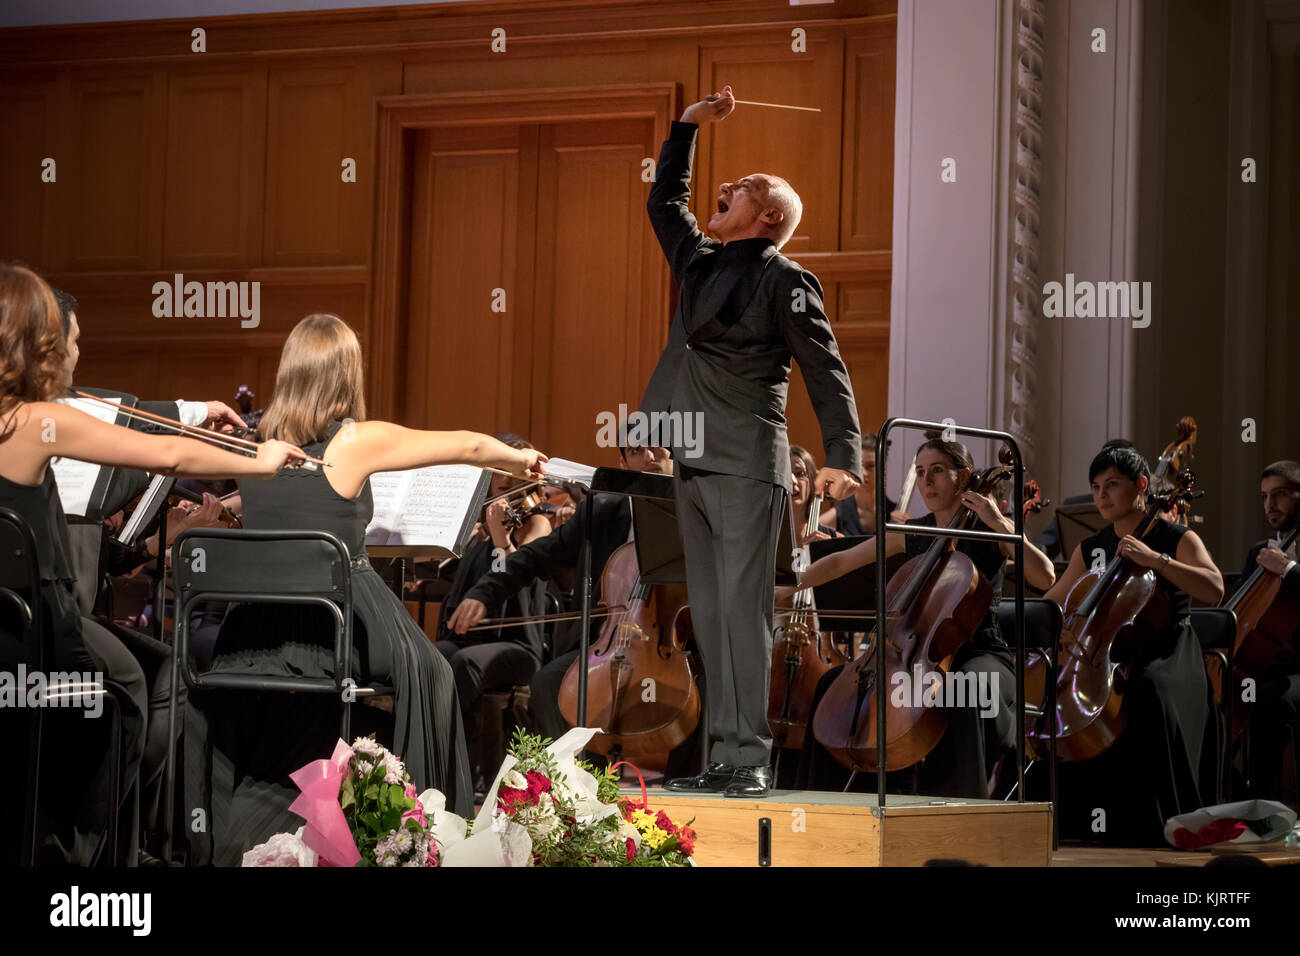 Vladimir Spivakov conducts the State Youth Orchestra of Armenia in the Great Hall of Moscow Conservatory, Russia - Stock Image